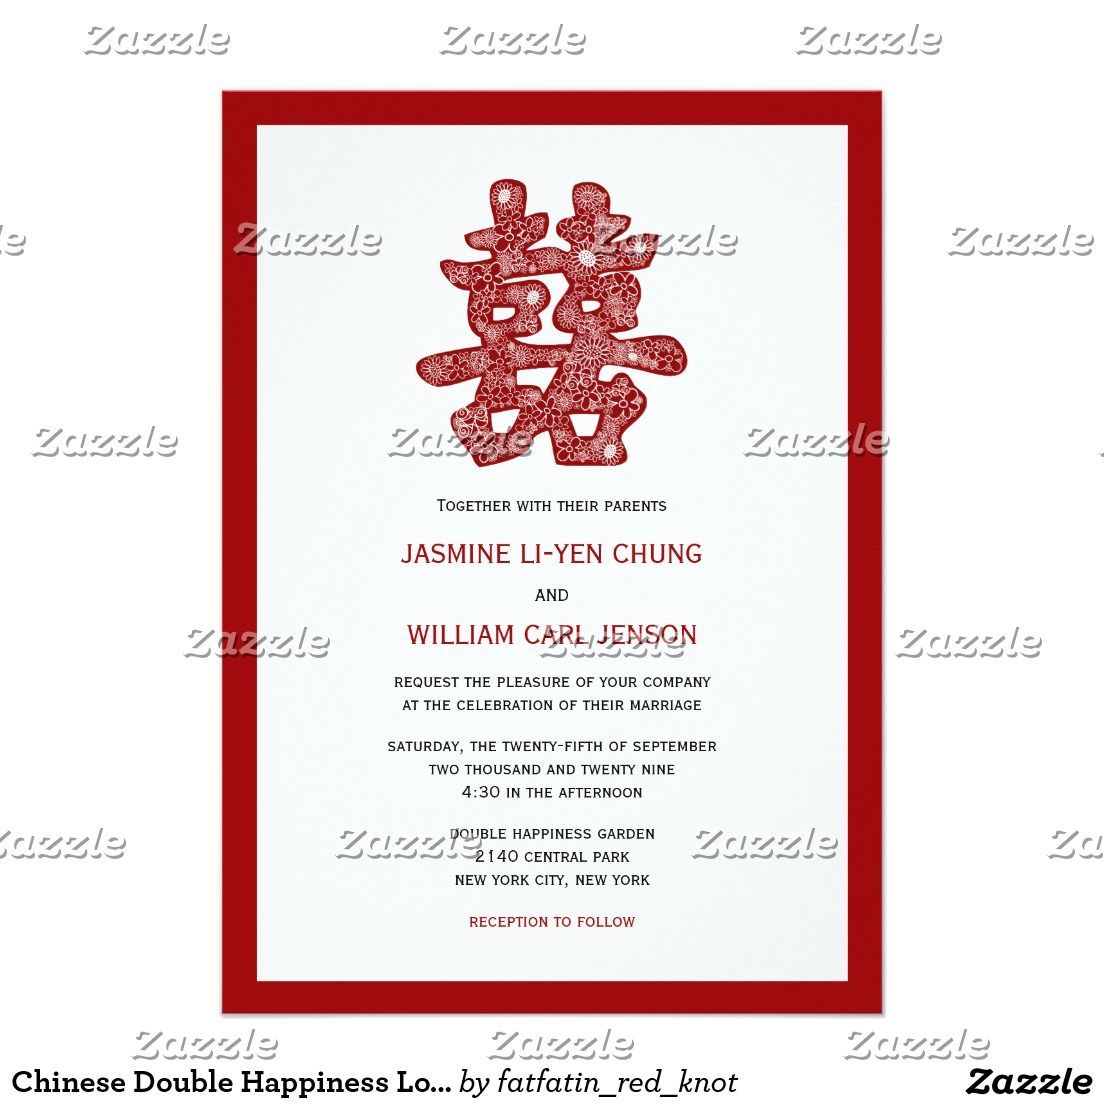 Chinese double happiness logo wedding invitation invitations shop floral double happiness chinese wedding invitation created by fatfatinredknot stopboris Image collections